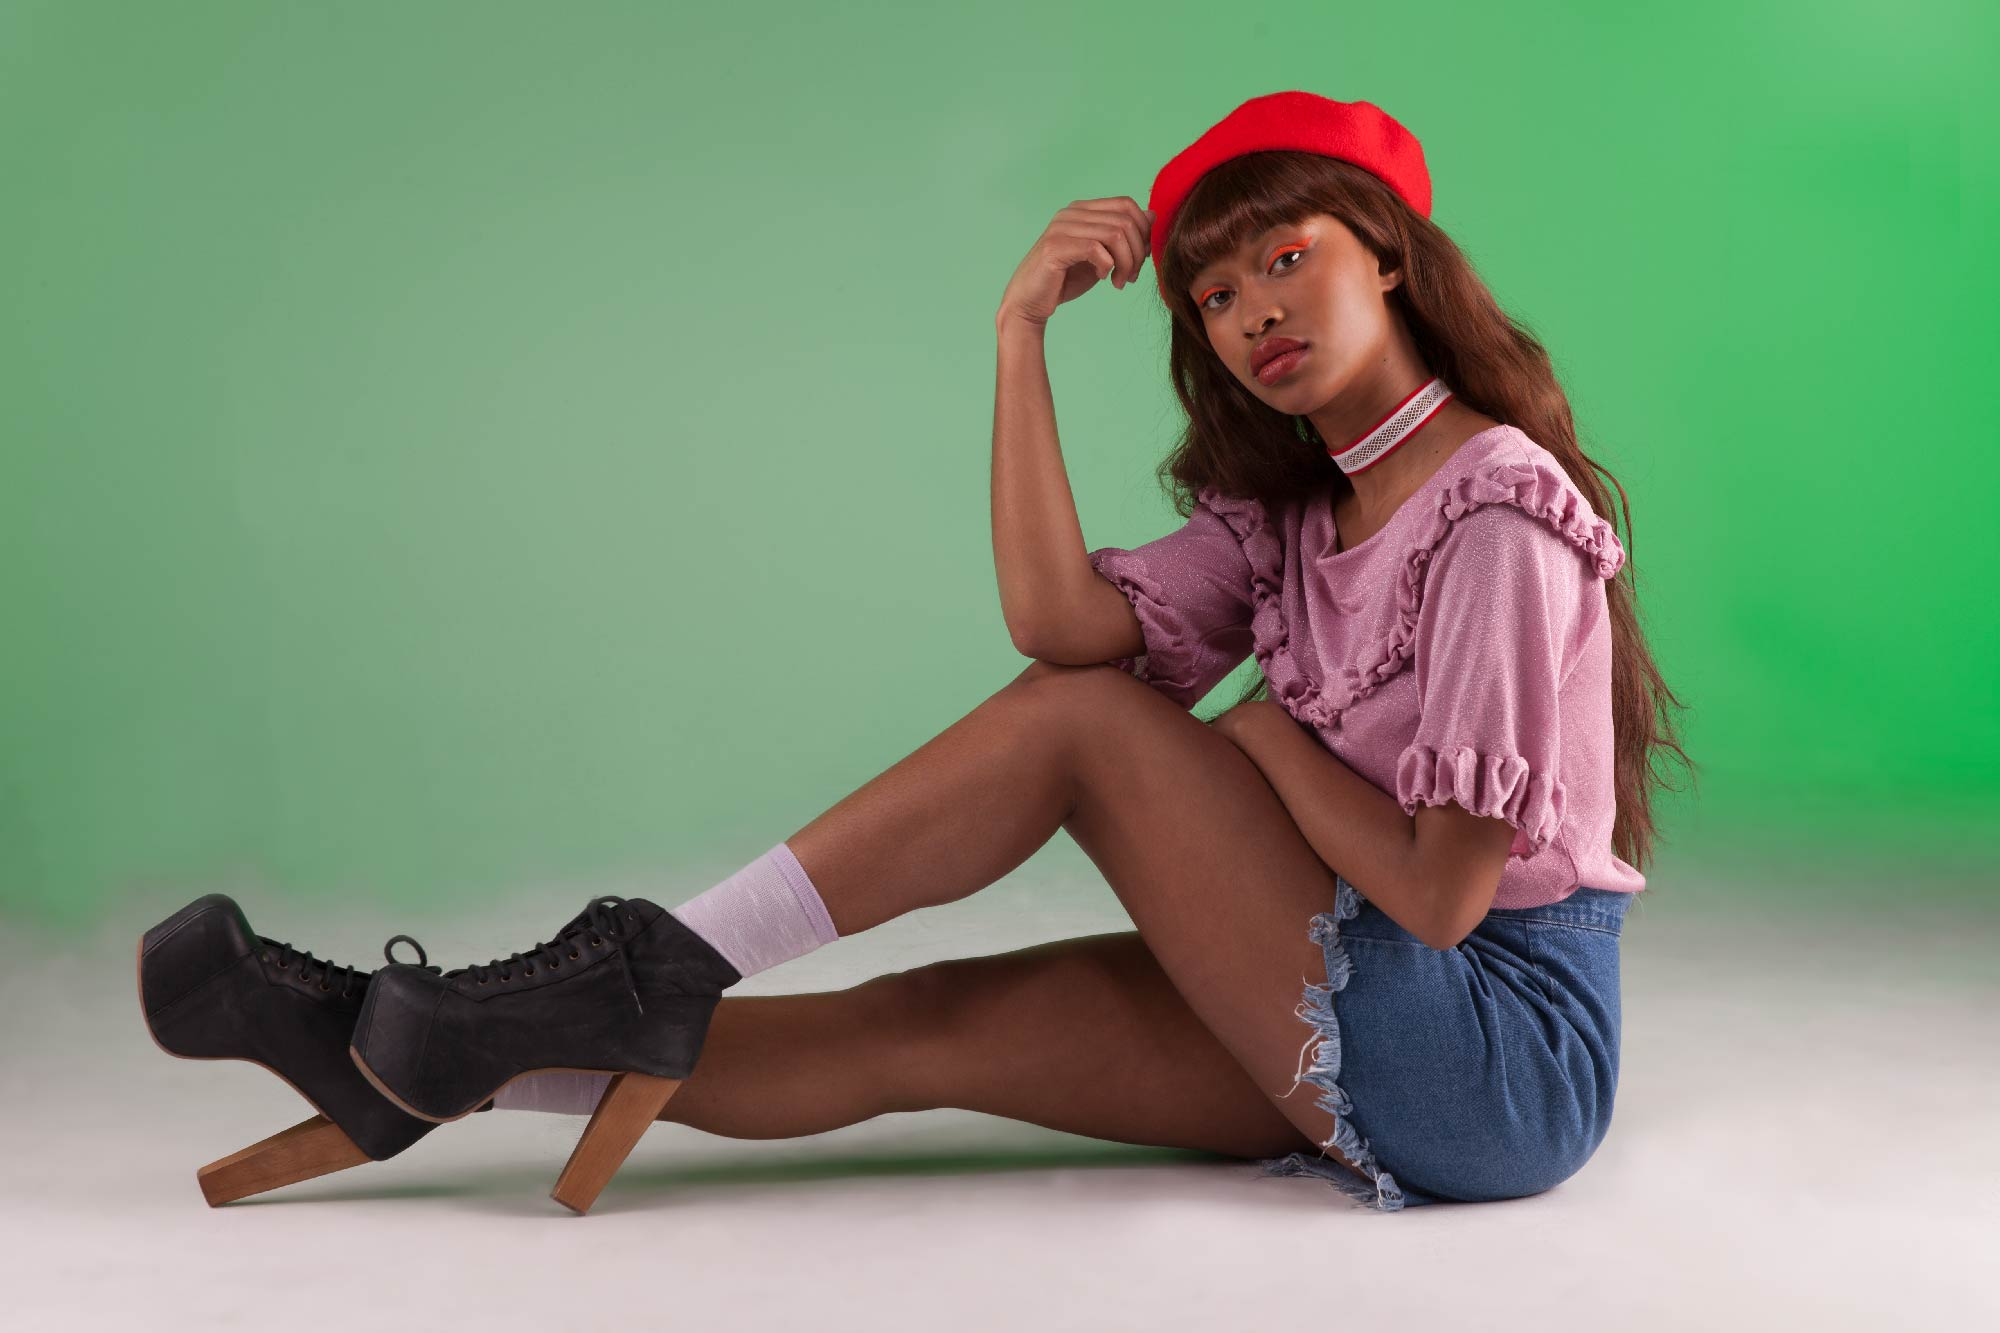 Professional fashion shoot in london. Girl in red hat poses whilst sitting on the floor, with a green backdrop.